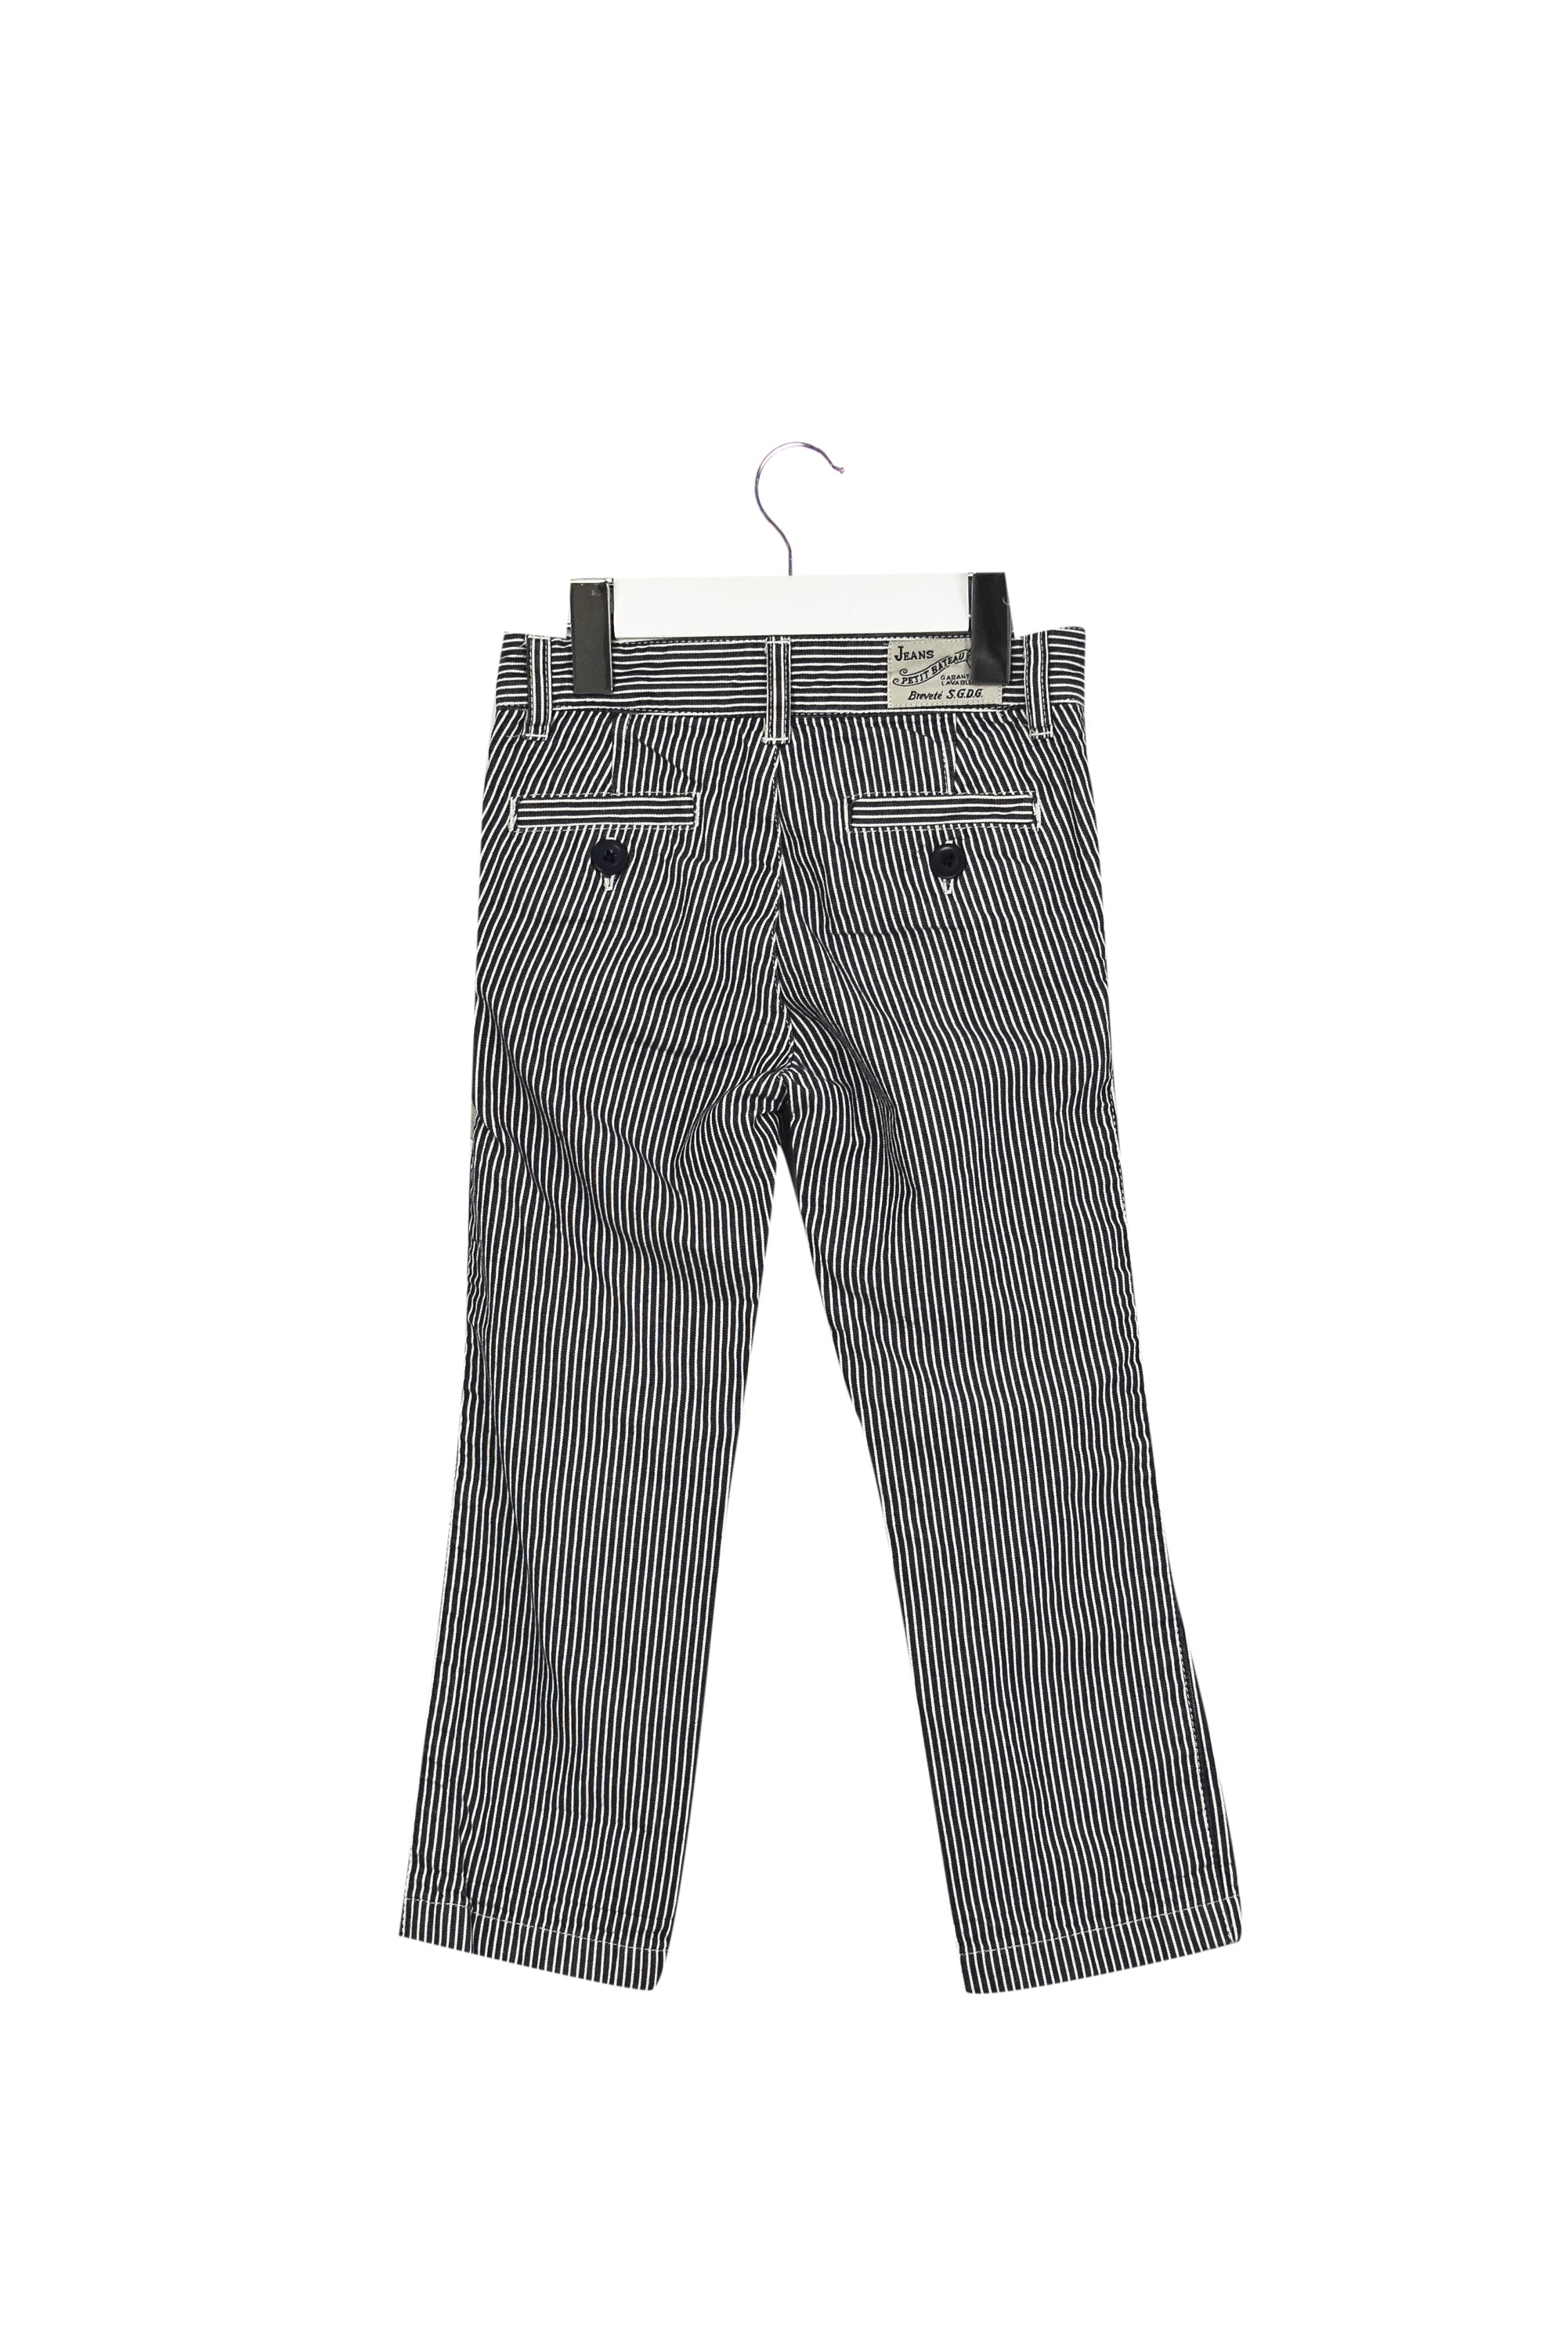 10035440 Petit Bateau Kids~Pants 3T at Retykle